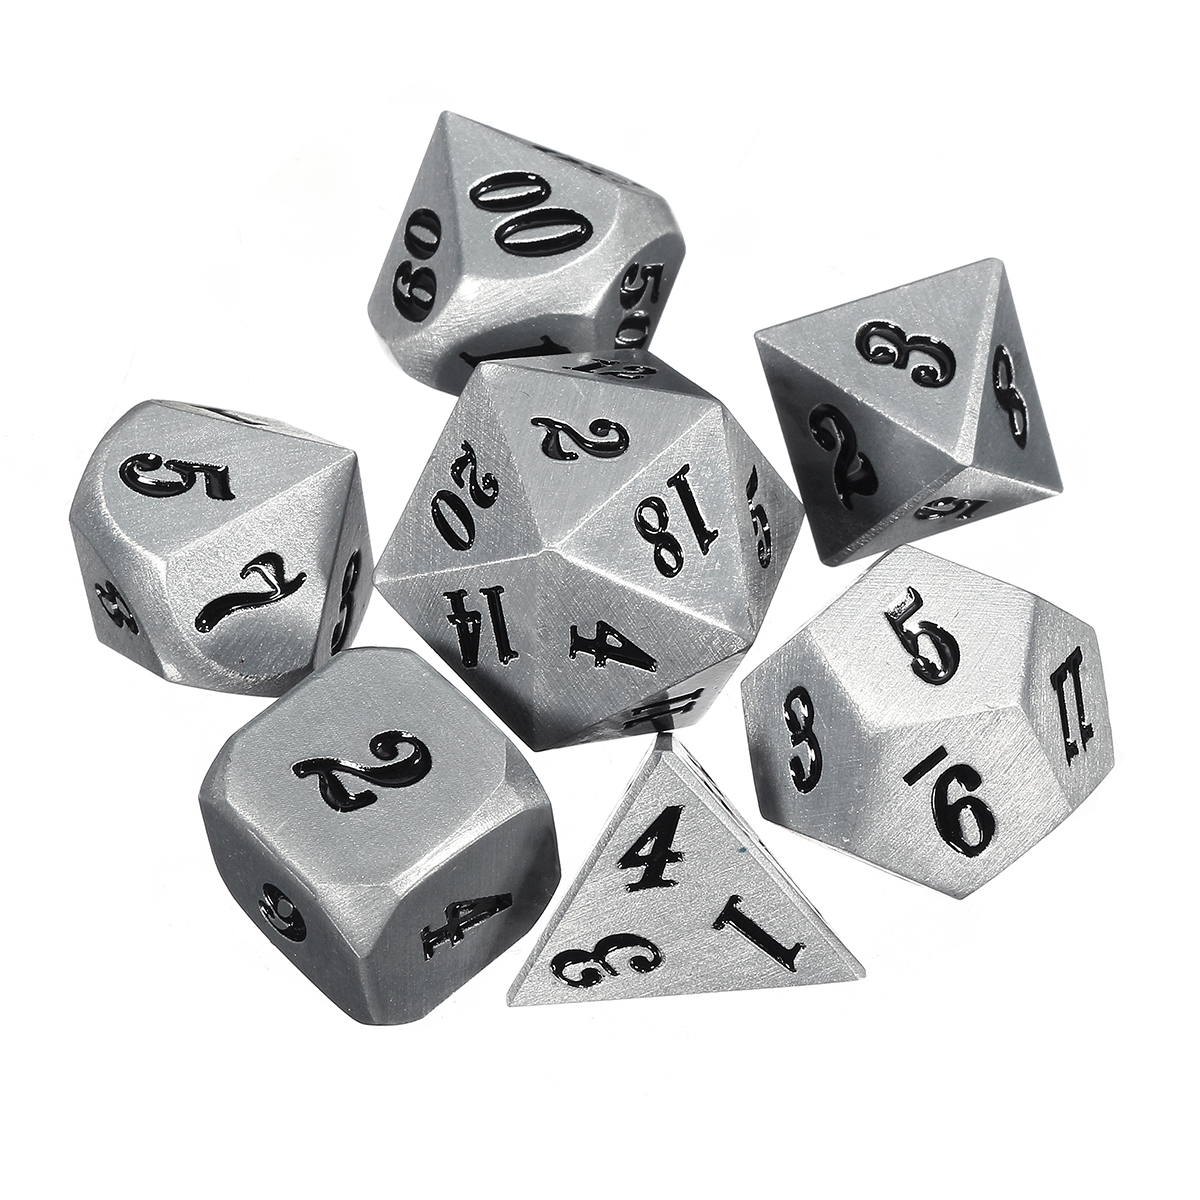 7Pc Solid Metal Heavy Dice Set Polyhedral Dices Role Playing Games Dice Gadget RPG